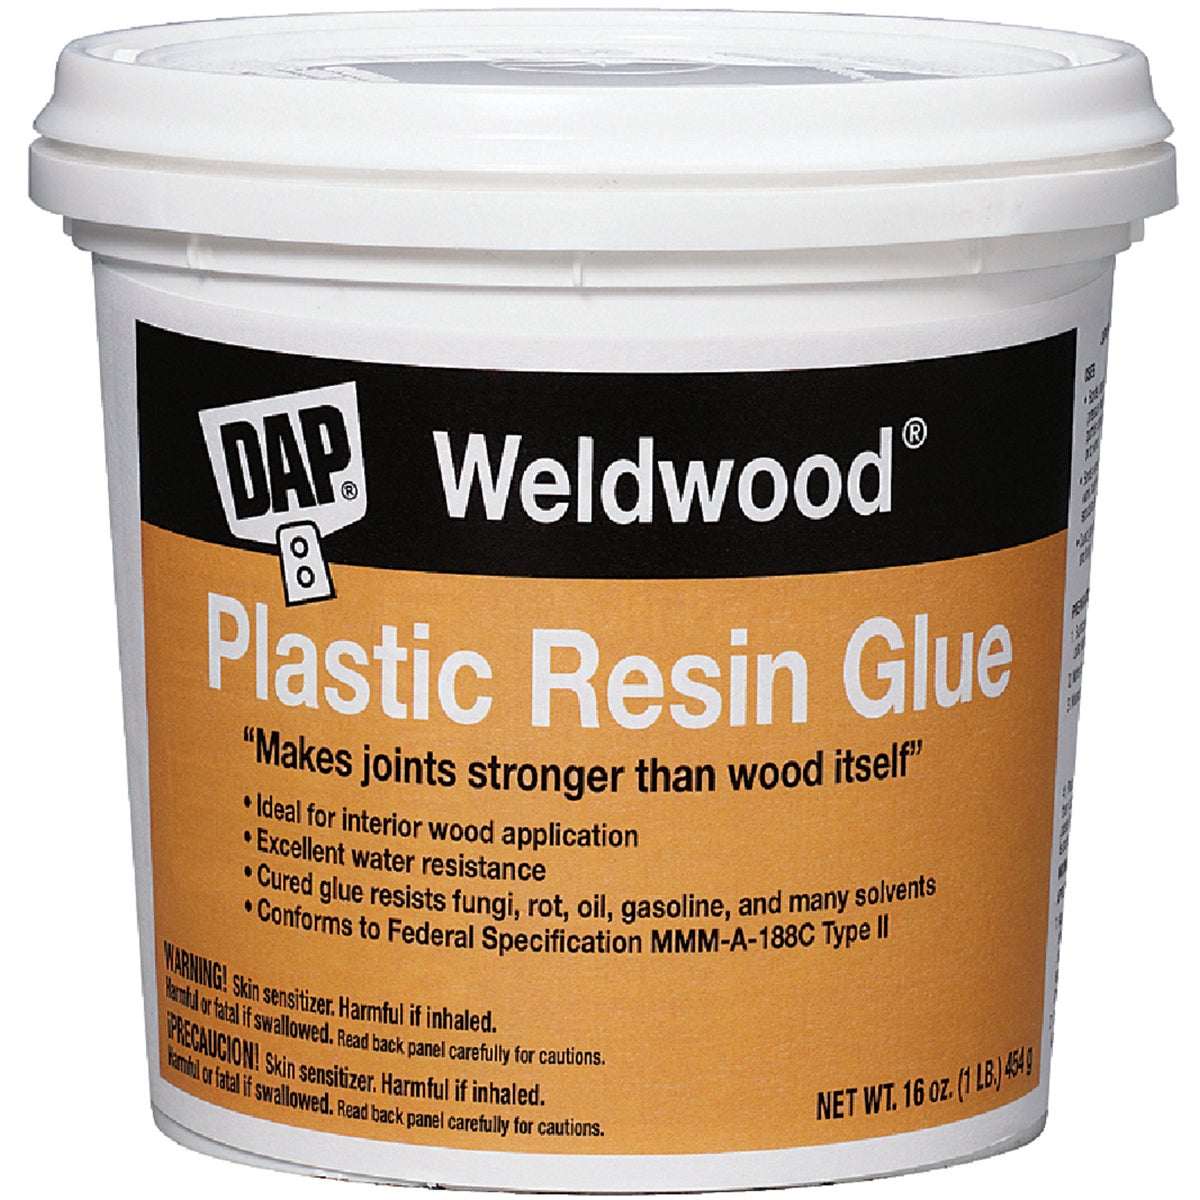 1LB PLASTIC RESIN GLUE - 00203 by Dap Inc